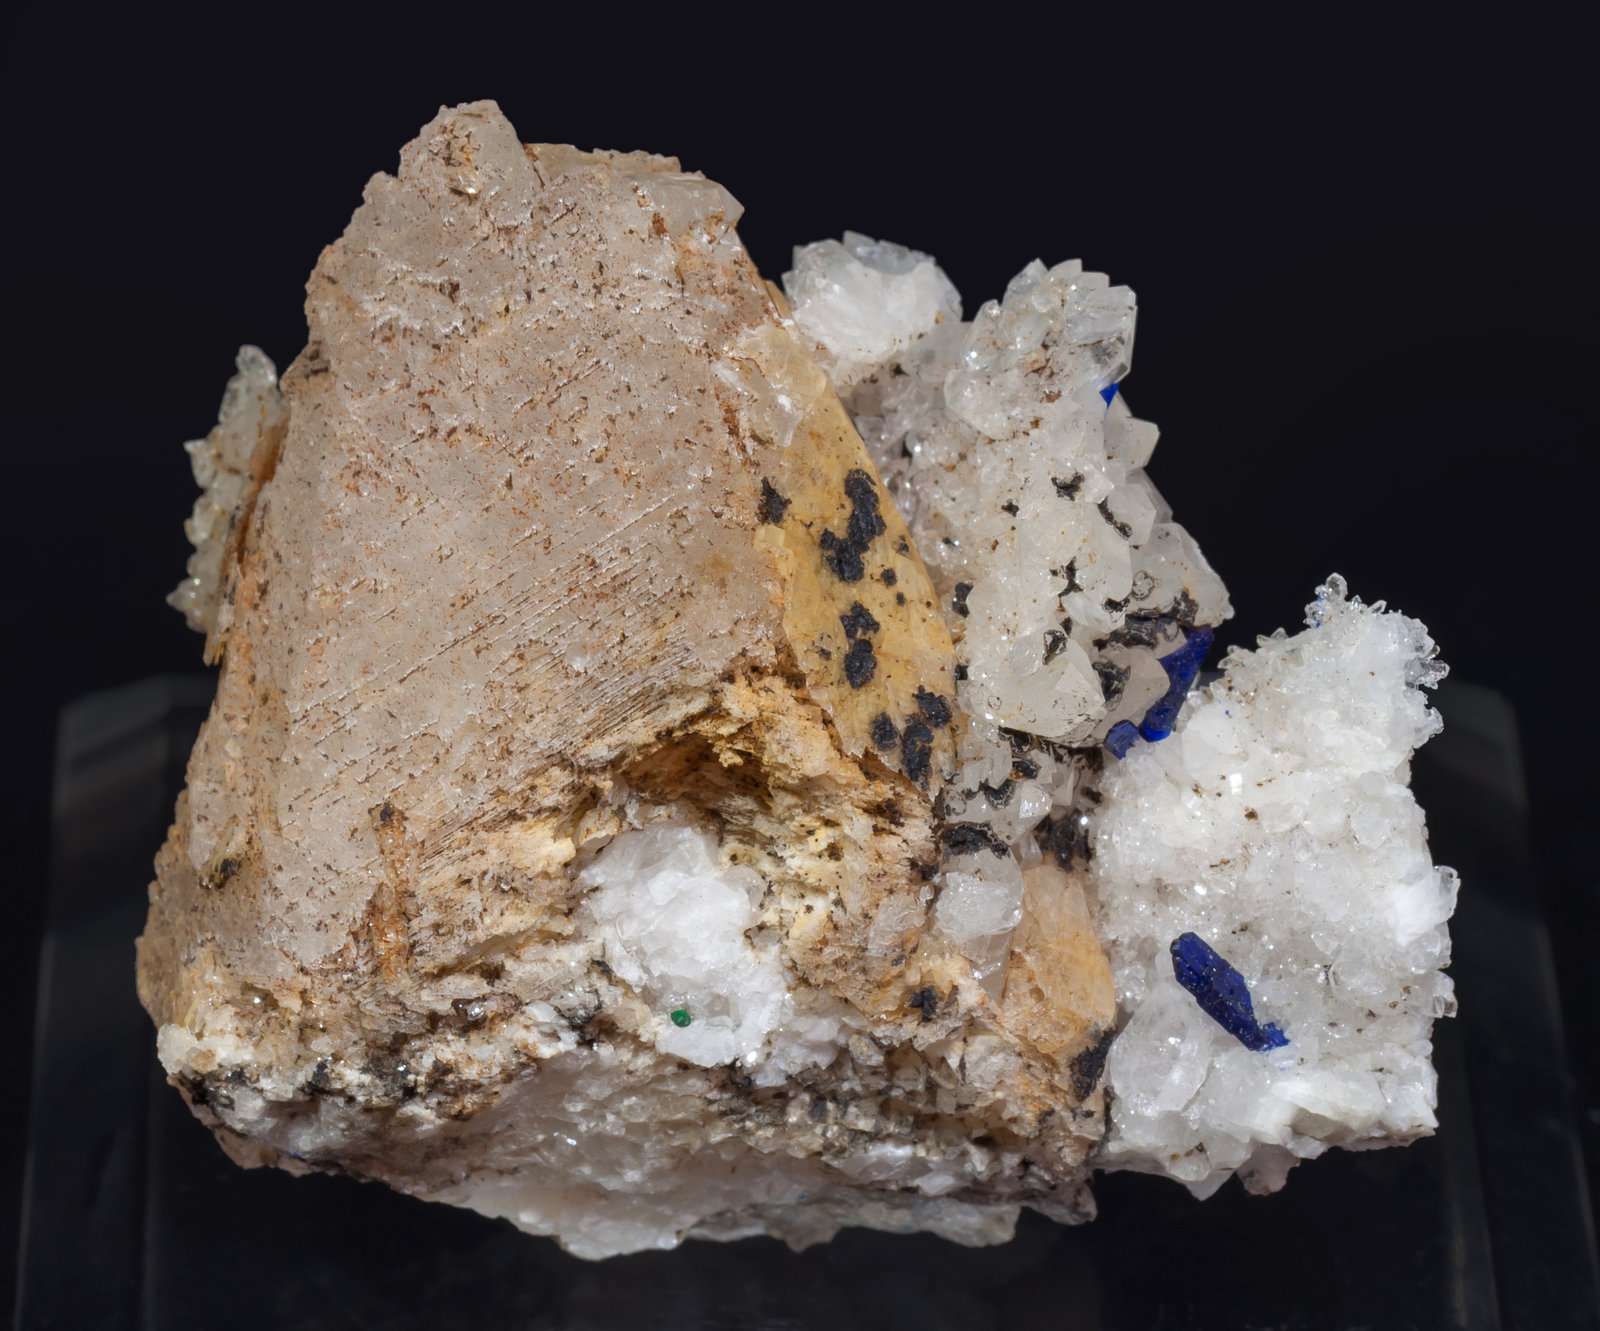 specimens/s_imagesAI1/Azurite-ND56AI1f.jpg